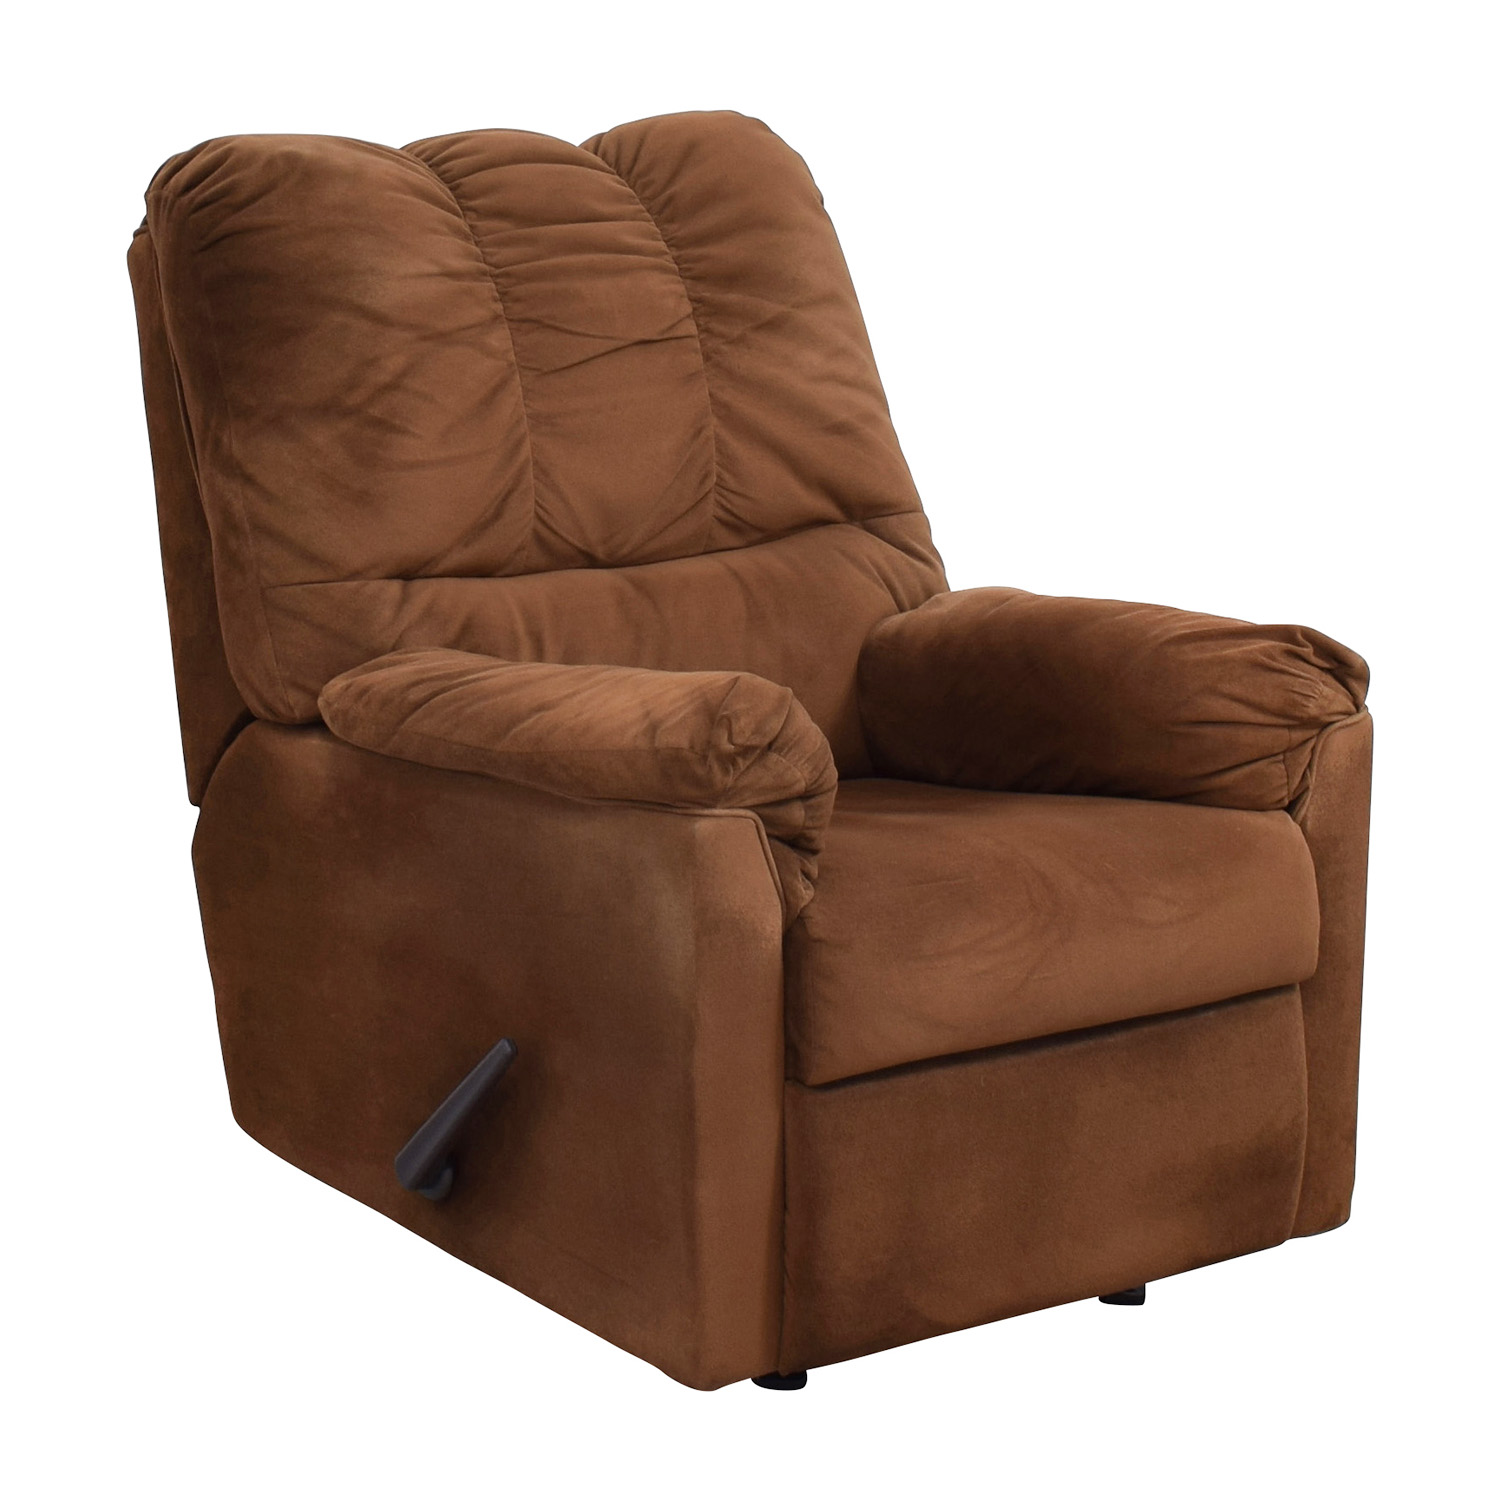 Brown Plush Recliner used